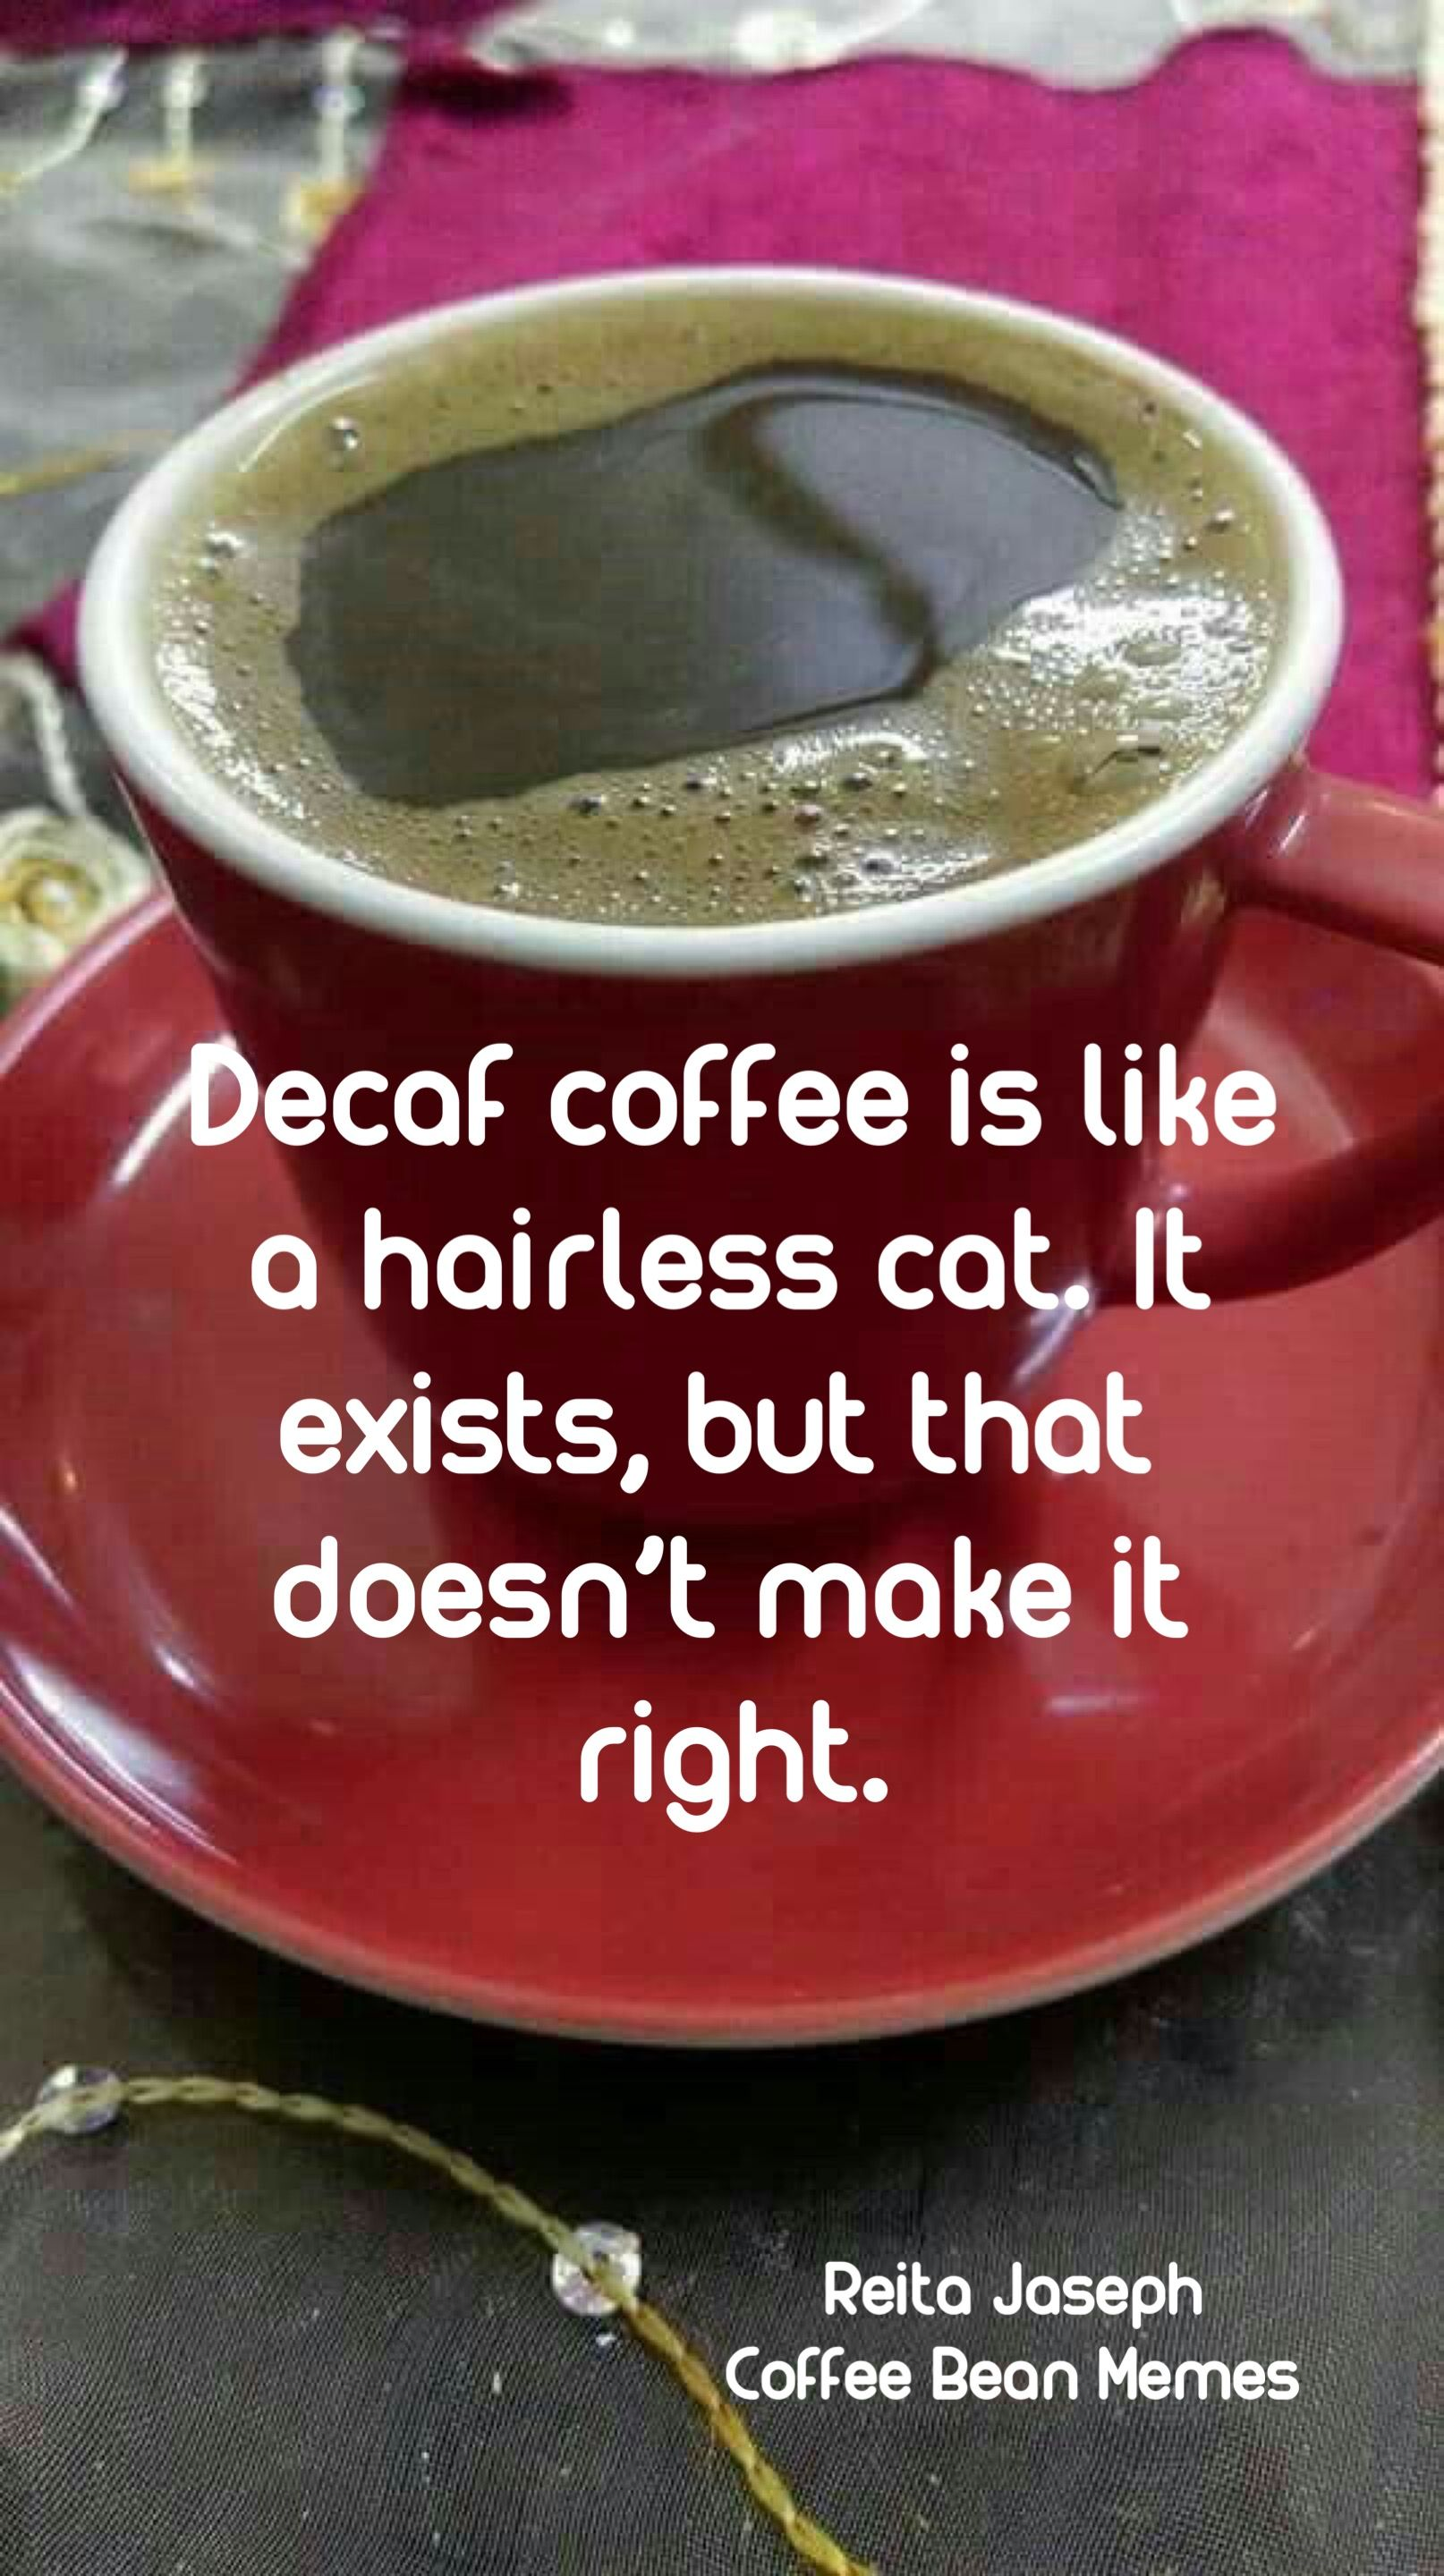 coffee #coffeebeanmemes | Motivation Juice in 2019 | Coffee humor ... #funnyCoffeeShop